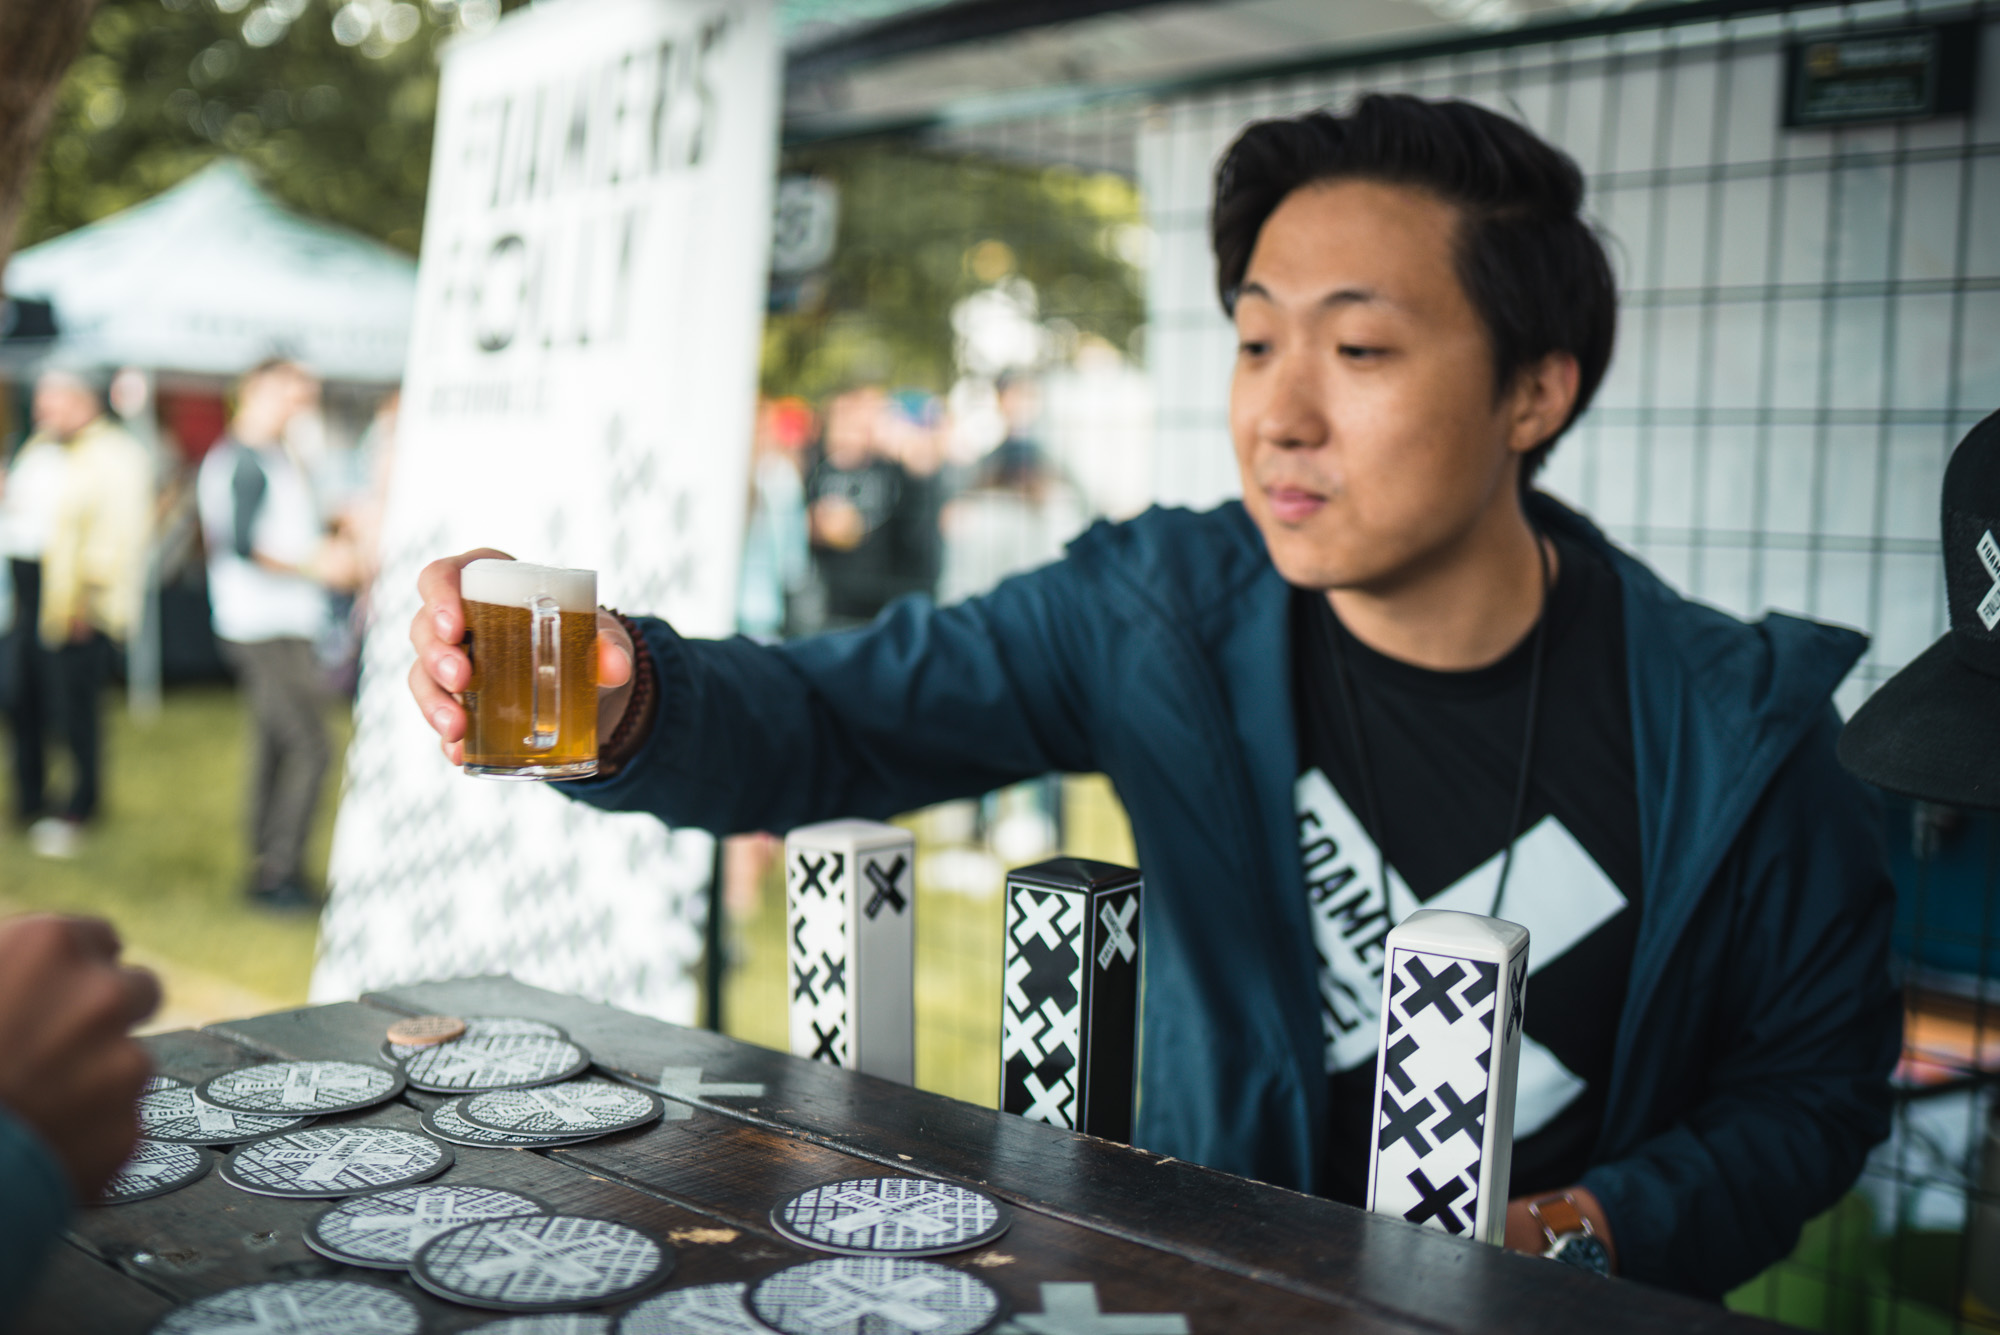 Foamers' Folly Brewing vcbw vancouver craft beer week festival IPA